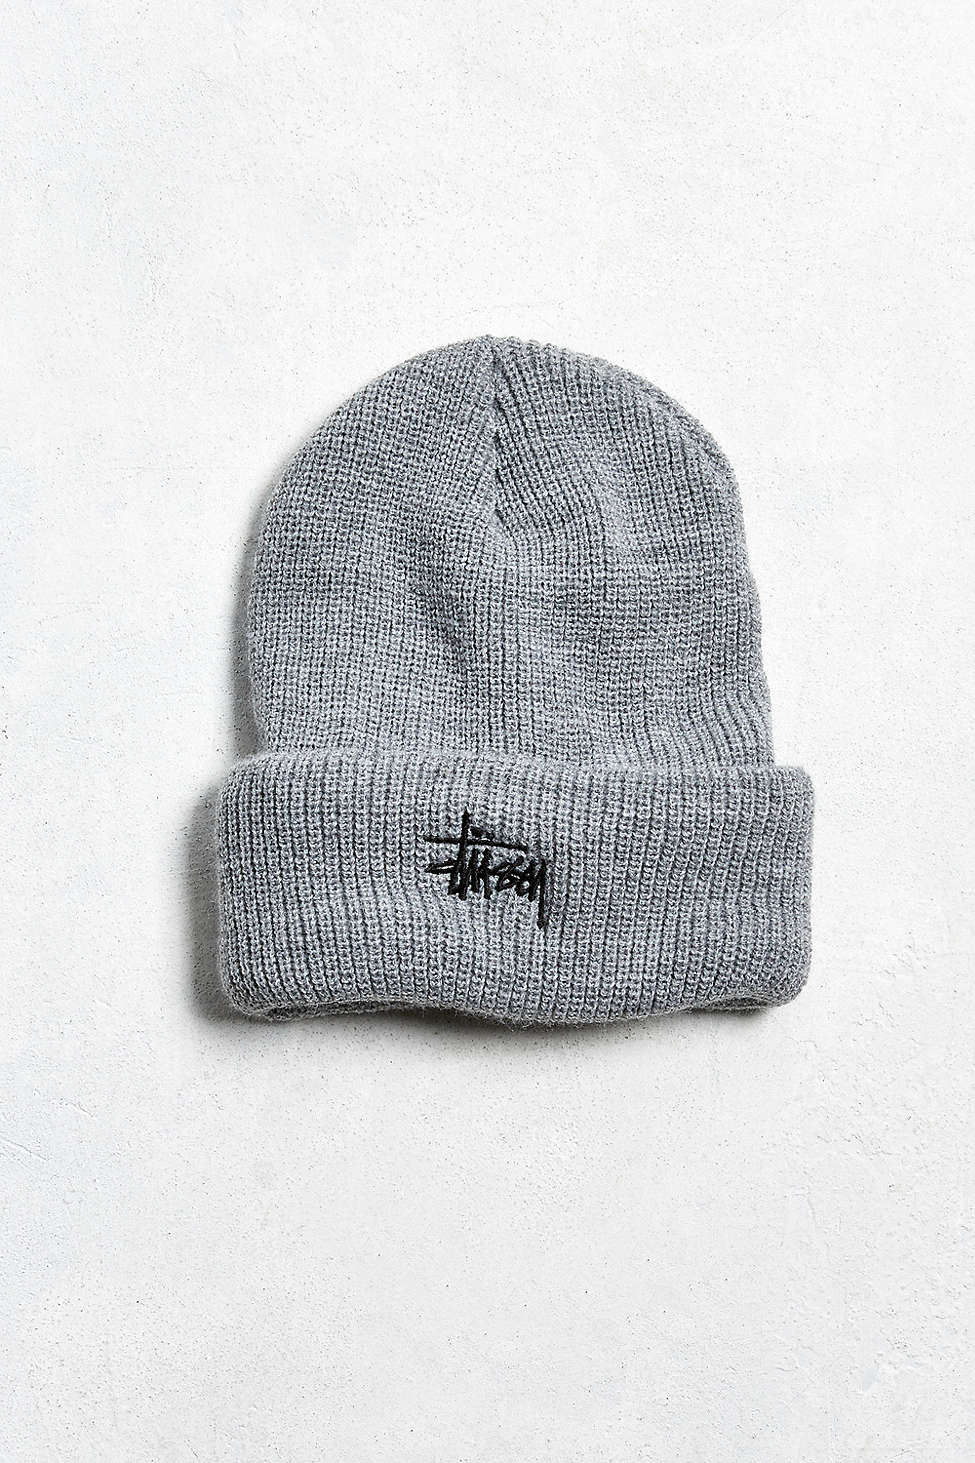 e38eb44f1a8 ... small cold hat peephole wool knit hat. Zoom · lightbox moreview ·  lightbox moreview ...